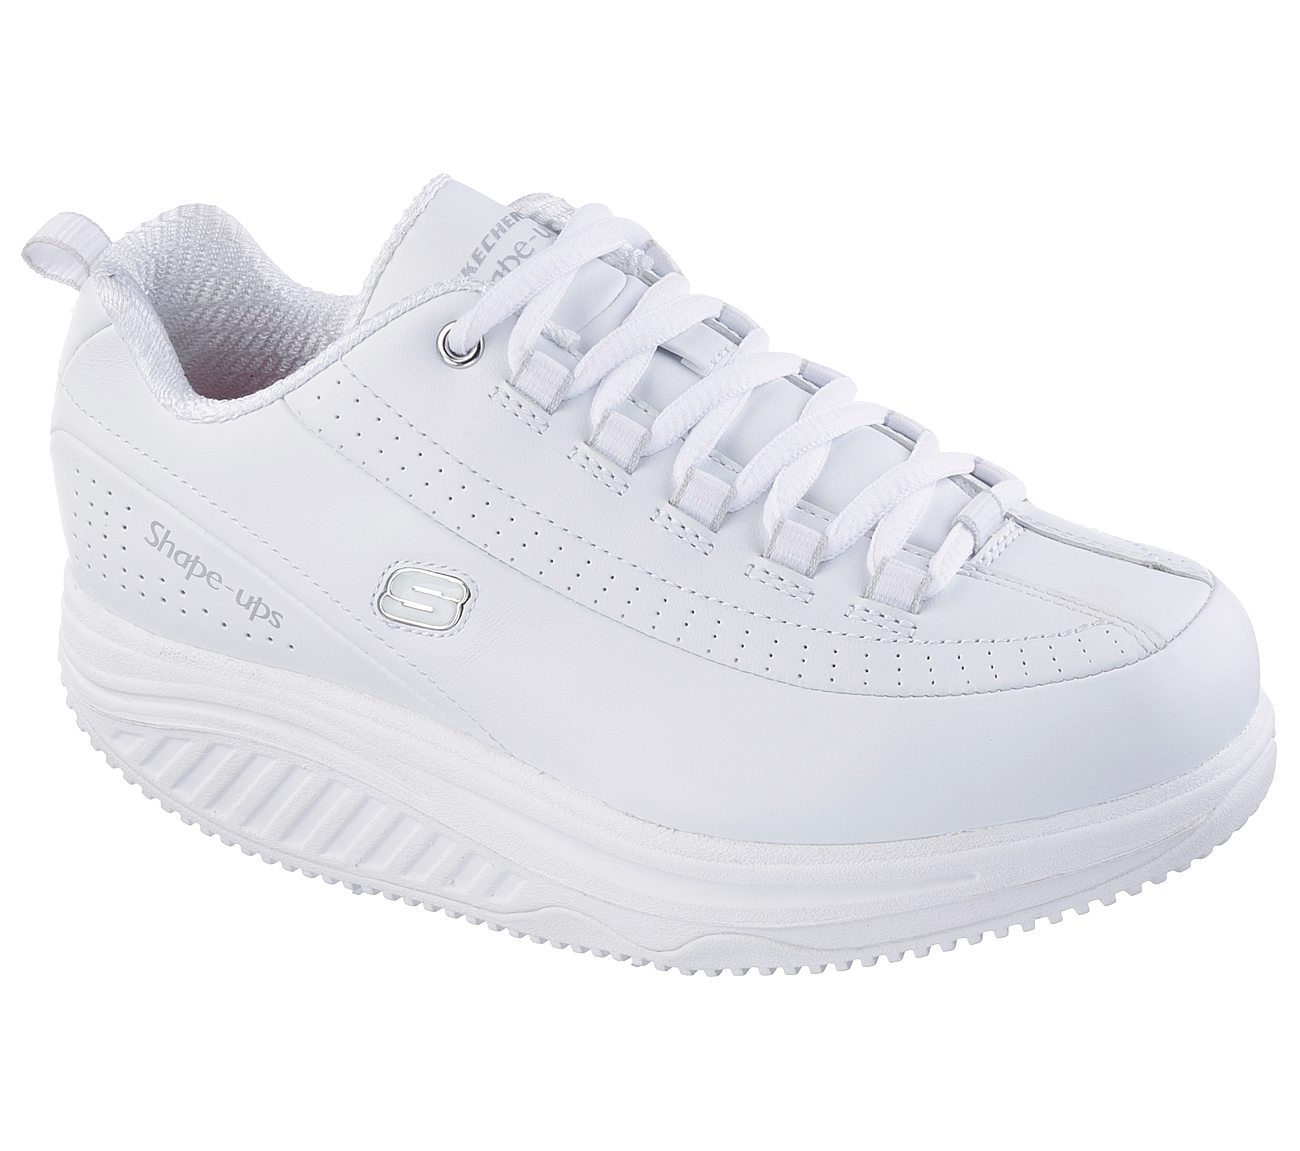 skechers shape up slip resistant shoes